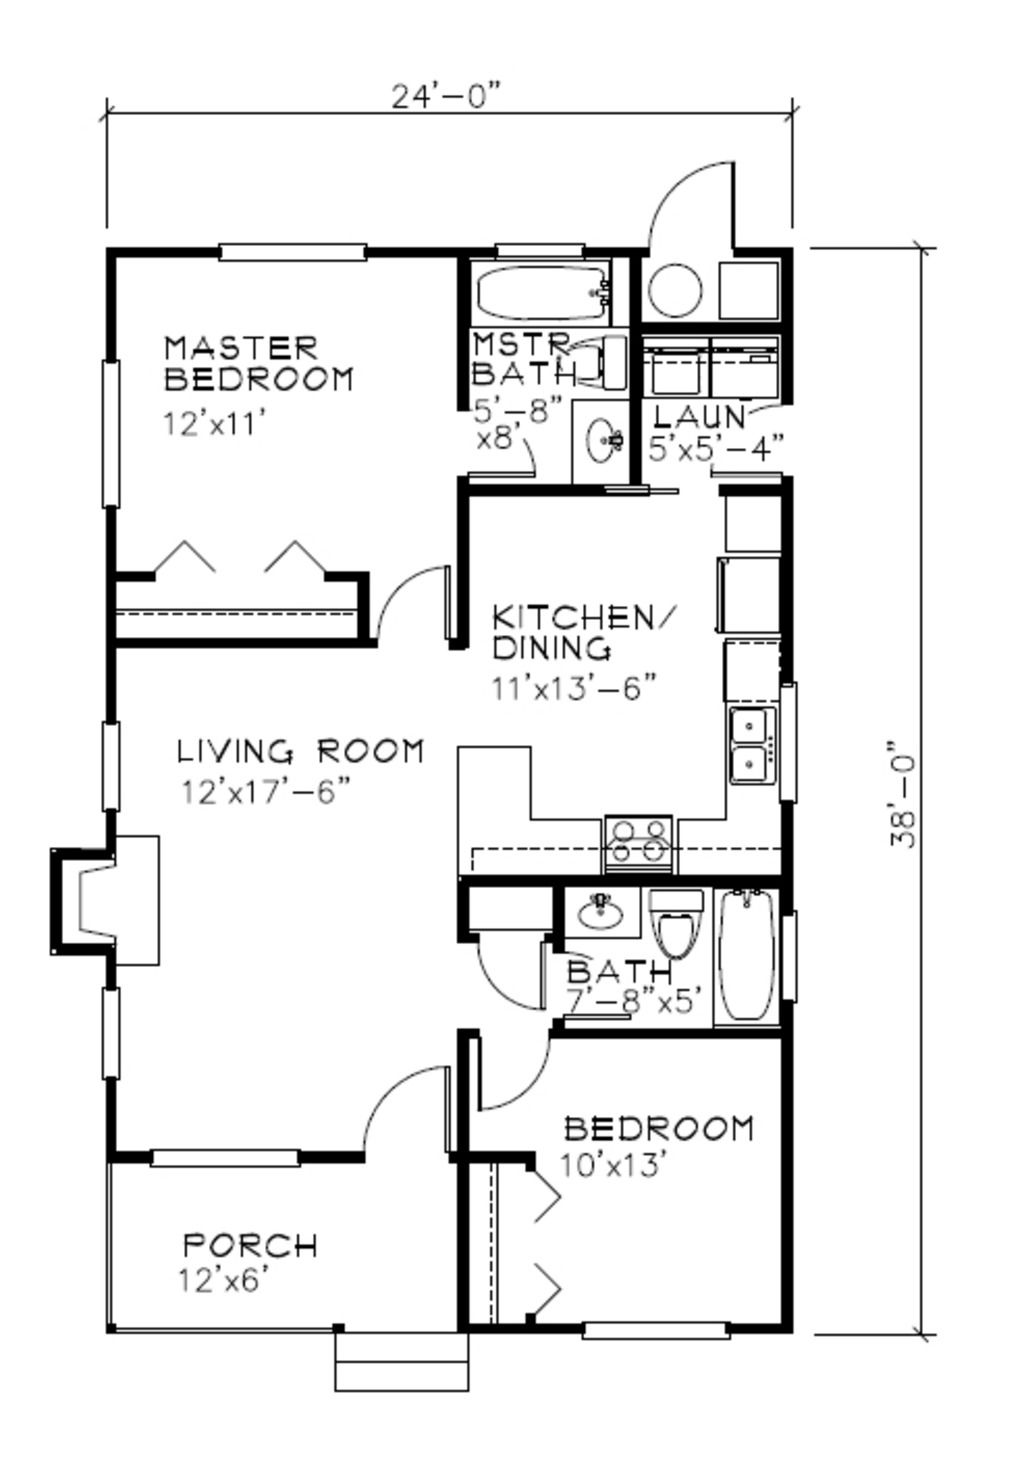 Cottage style house plan beds baths sq ft floor main houseplans also rh co pinterest